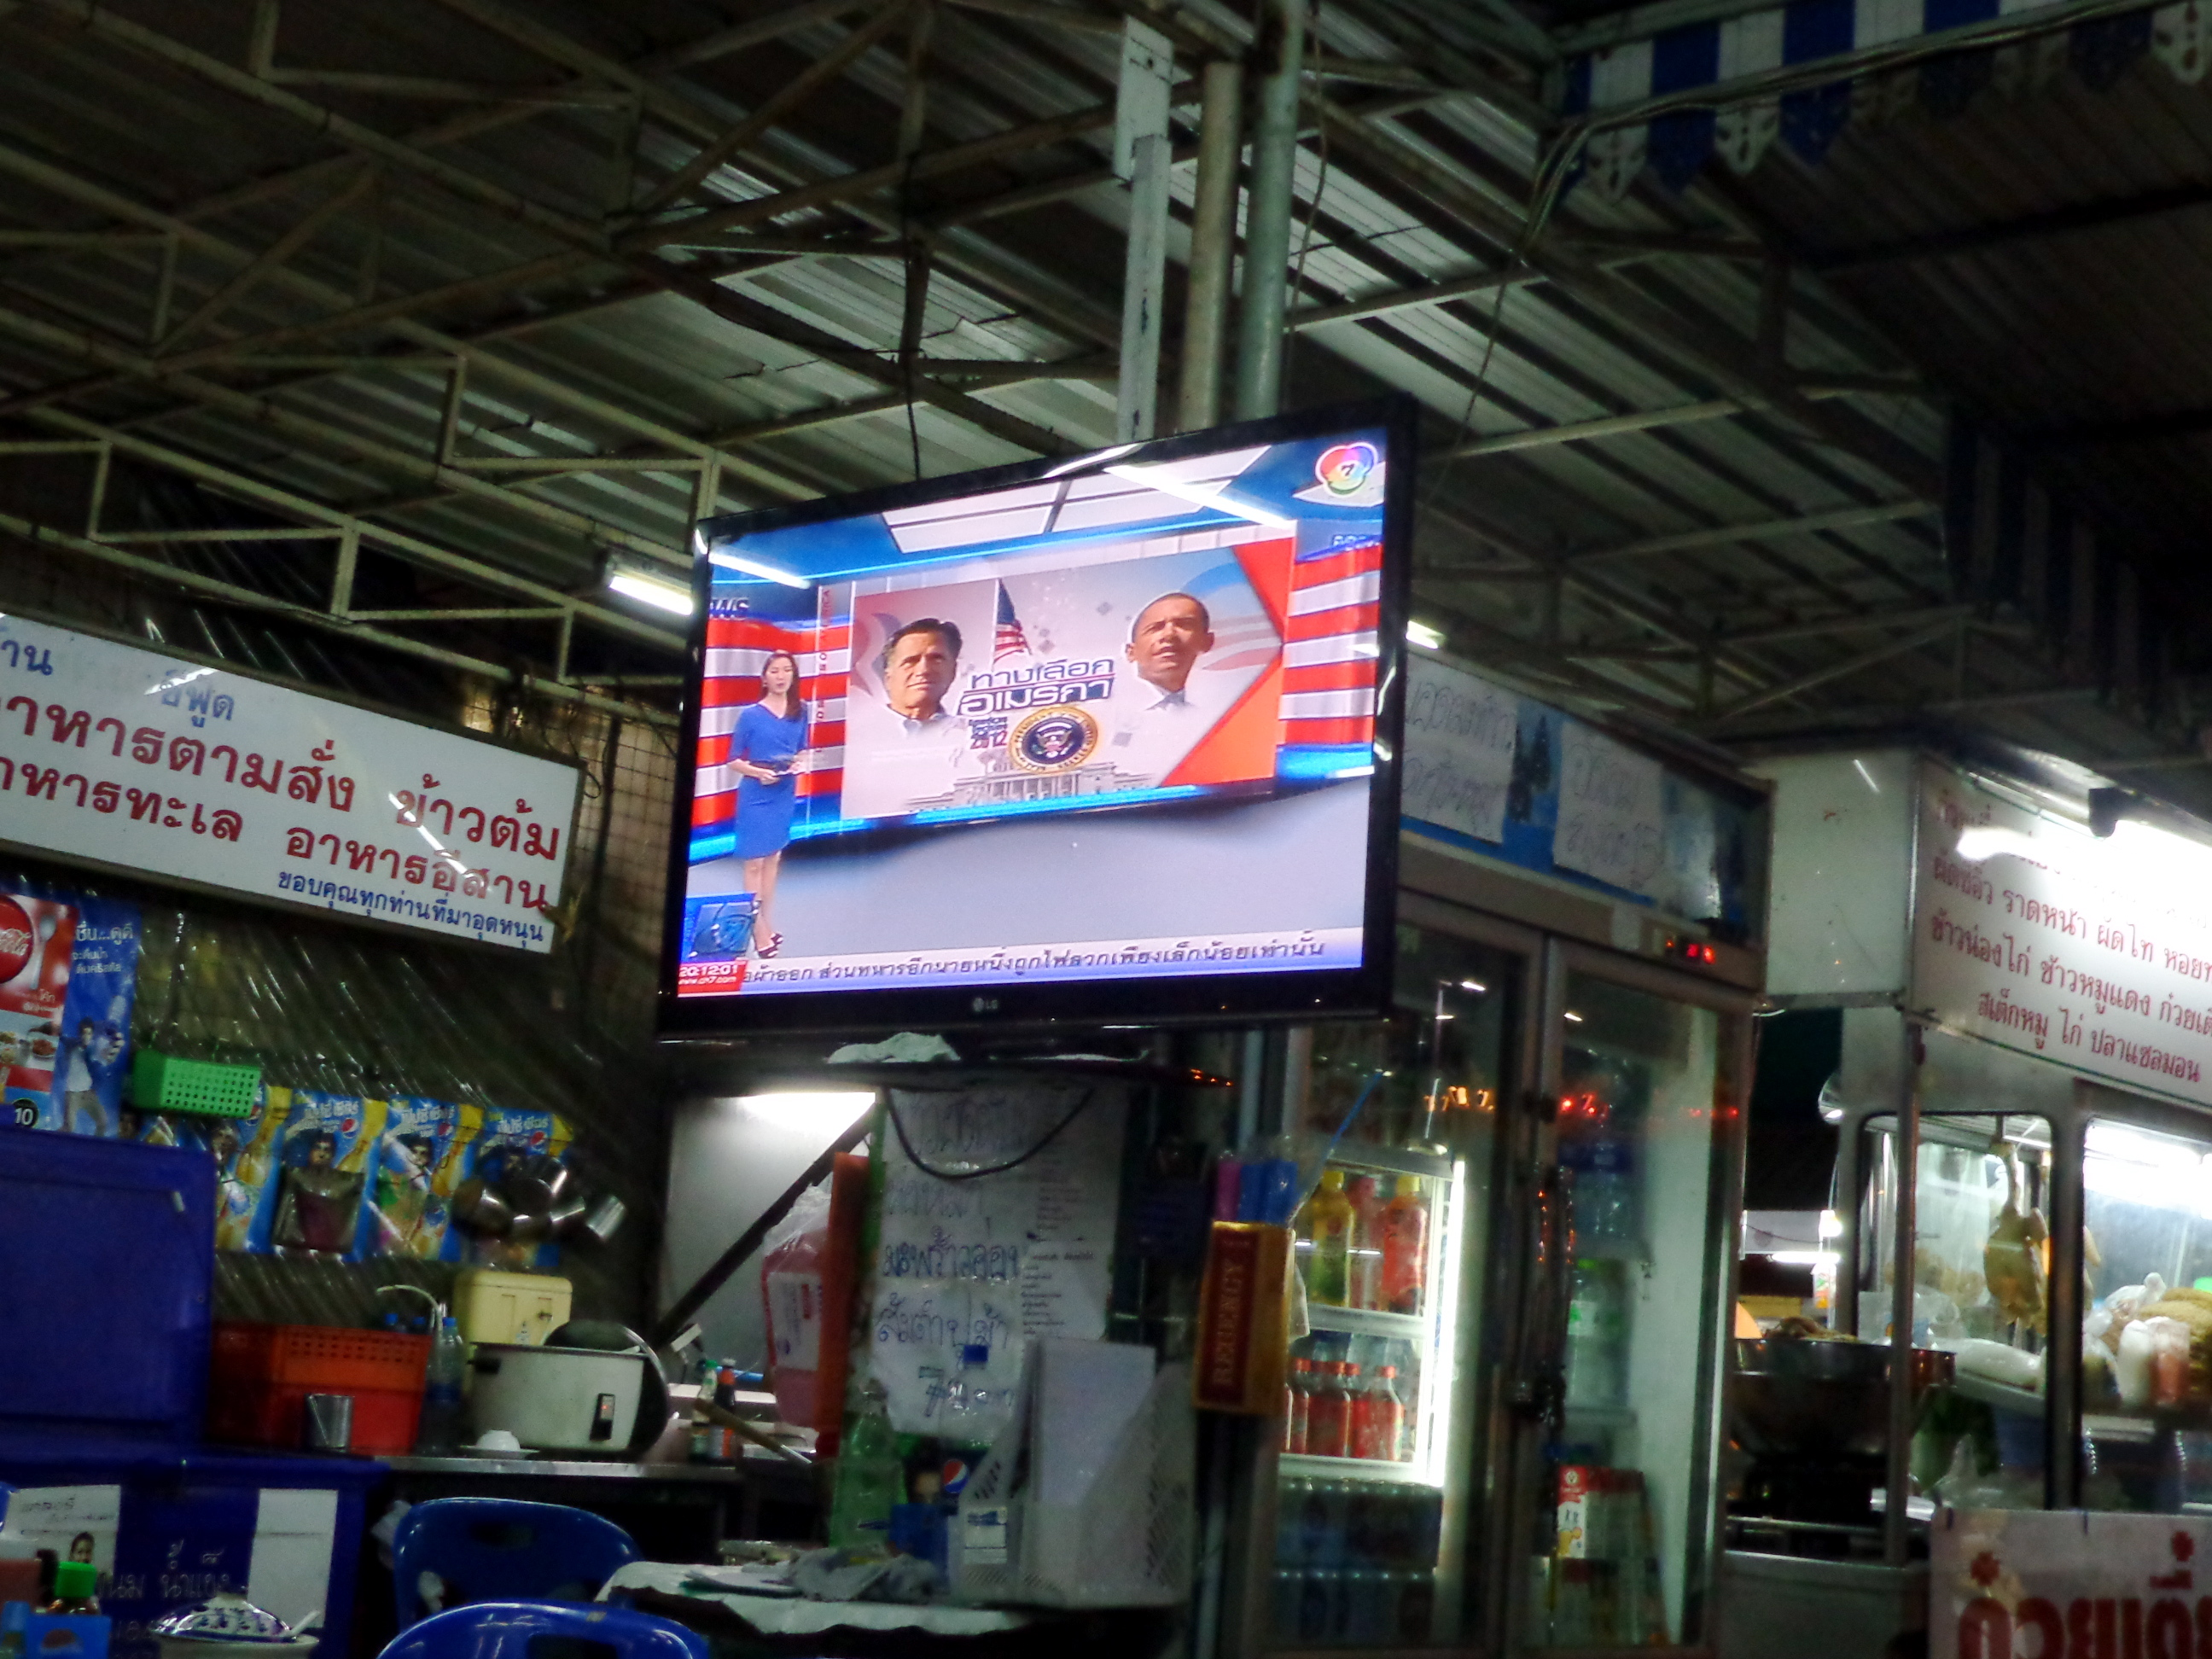 Watching the American election news from Thailand